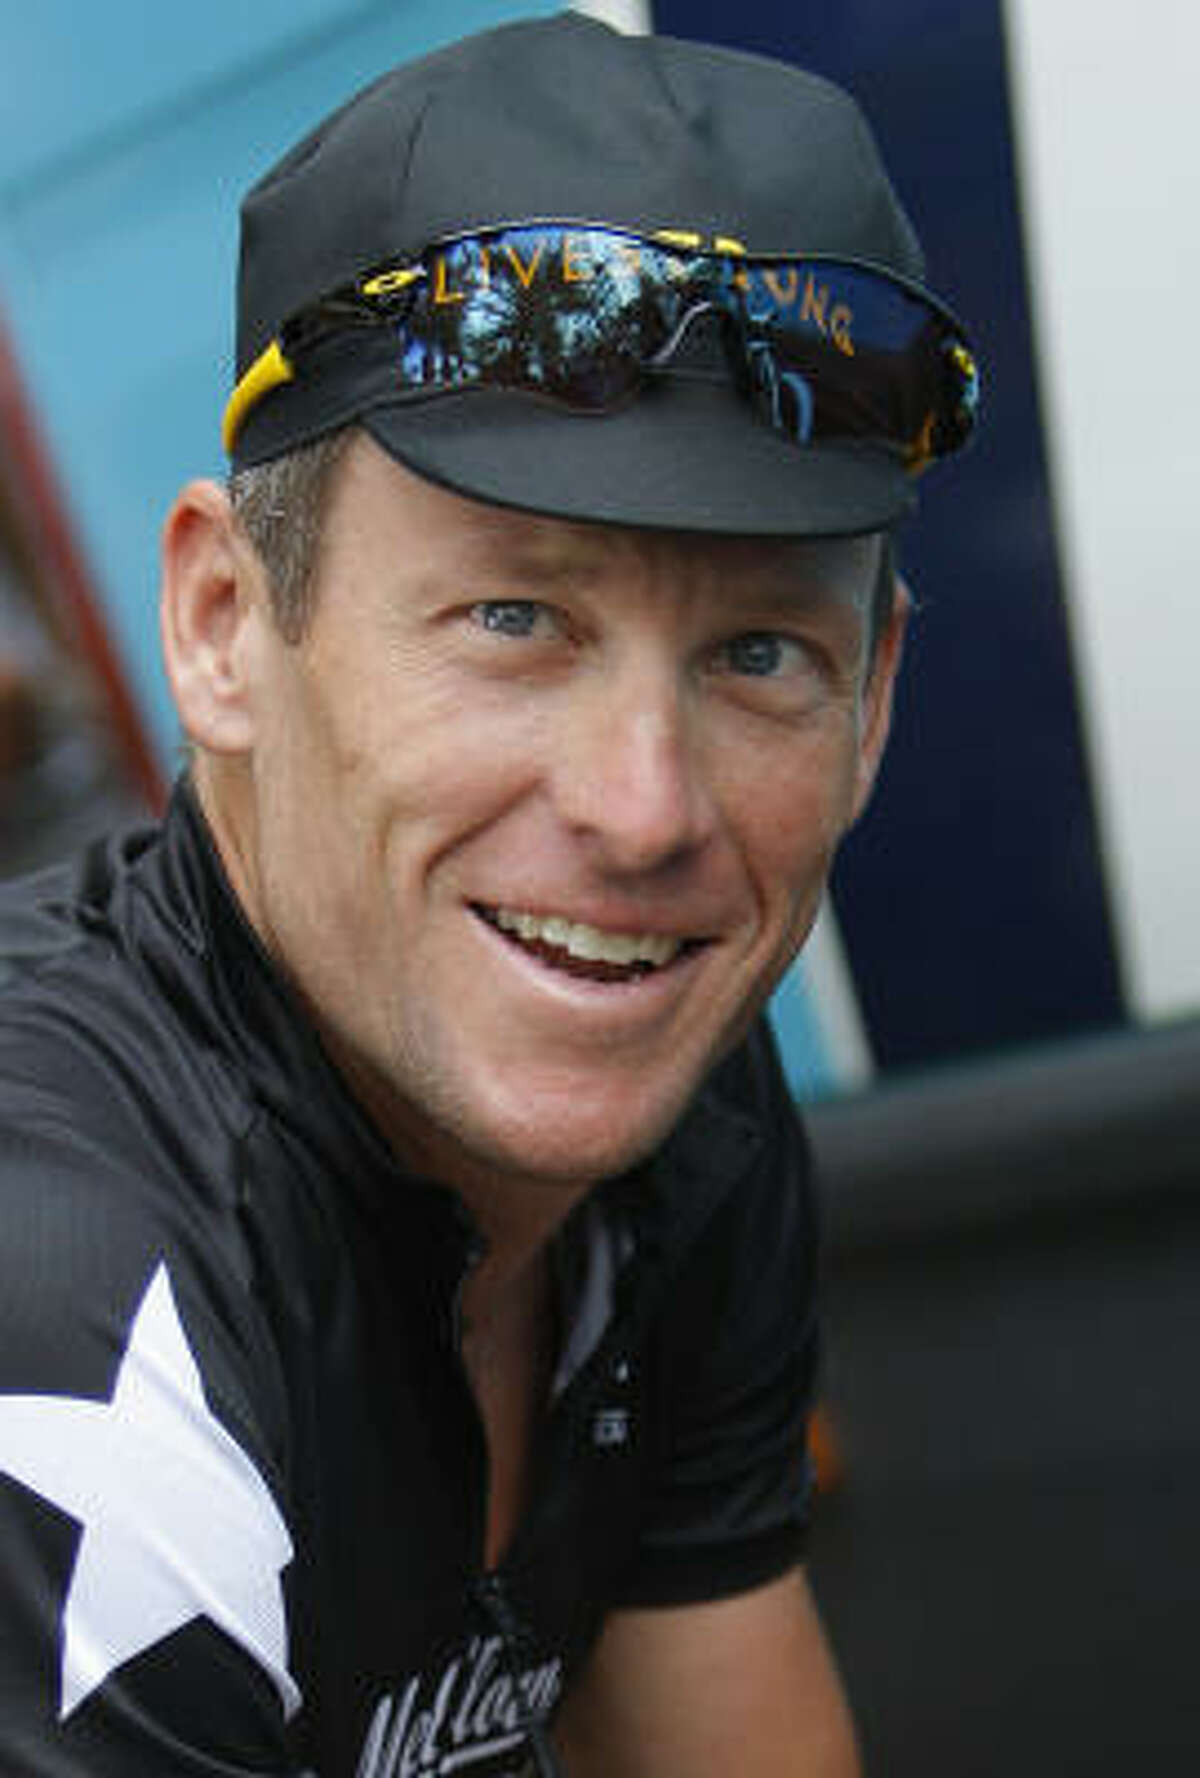 lancearmstrong :